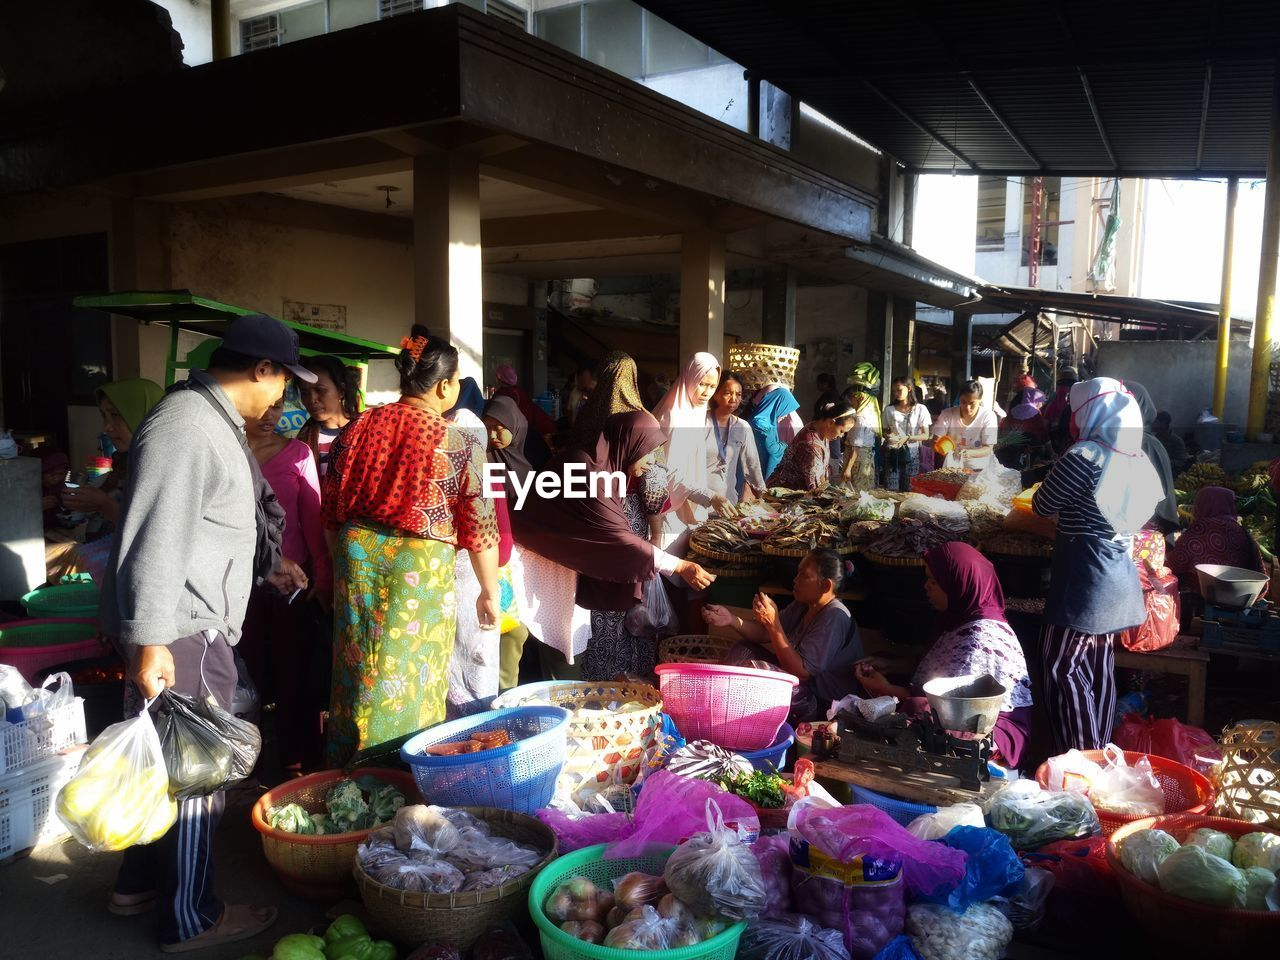 group of people, market, real people, men, for sale, retail, selling, women, large group of people, choice, small business, market stall, business, crowd, day, adult, retail display, variation, large group of objects, sale, buying, street market, consumerism